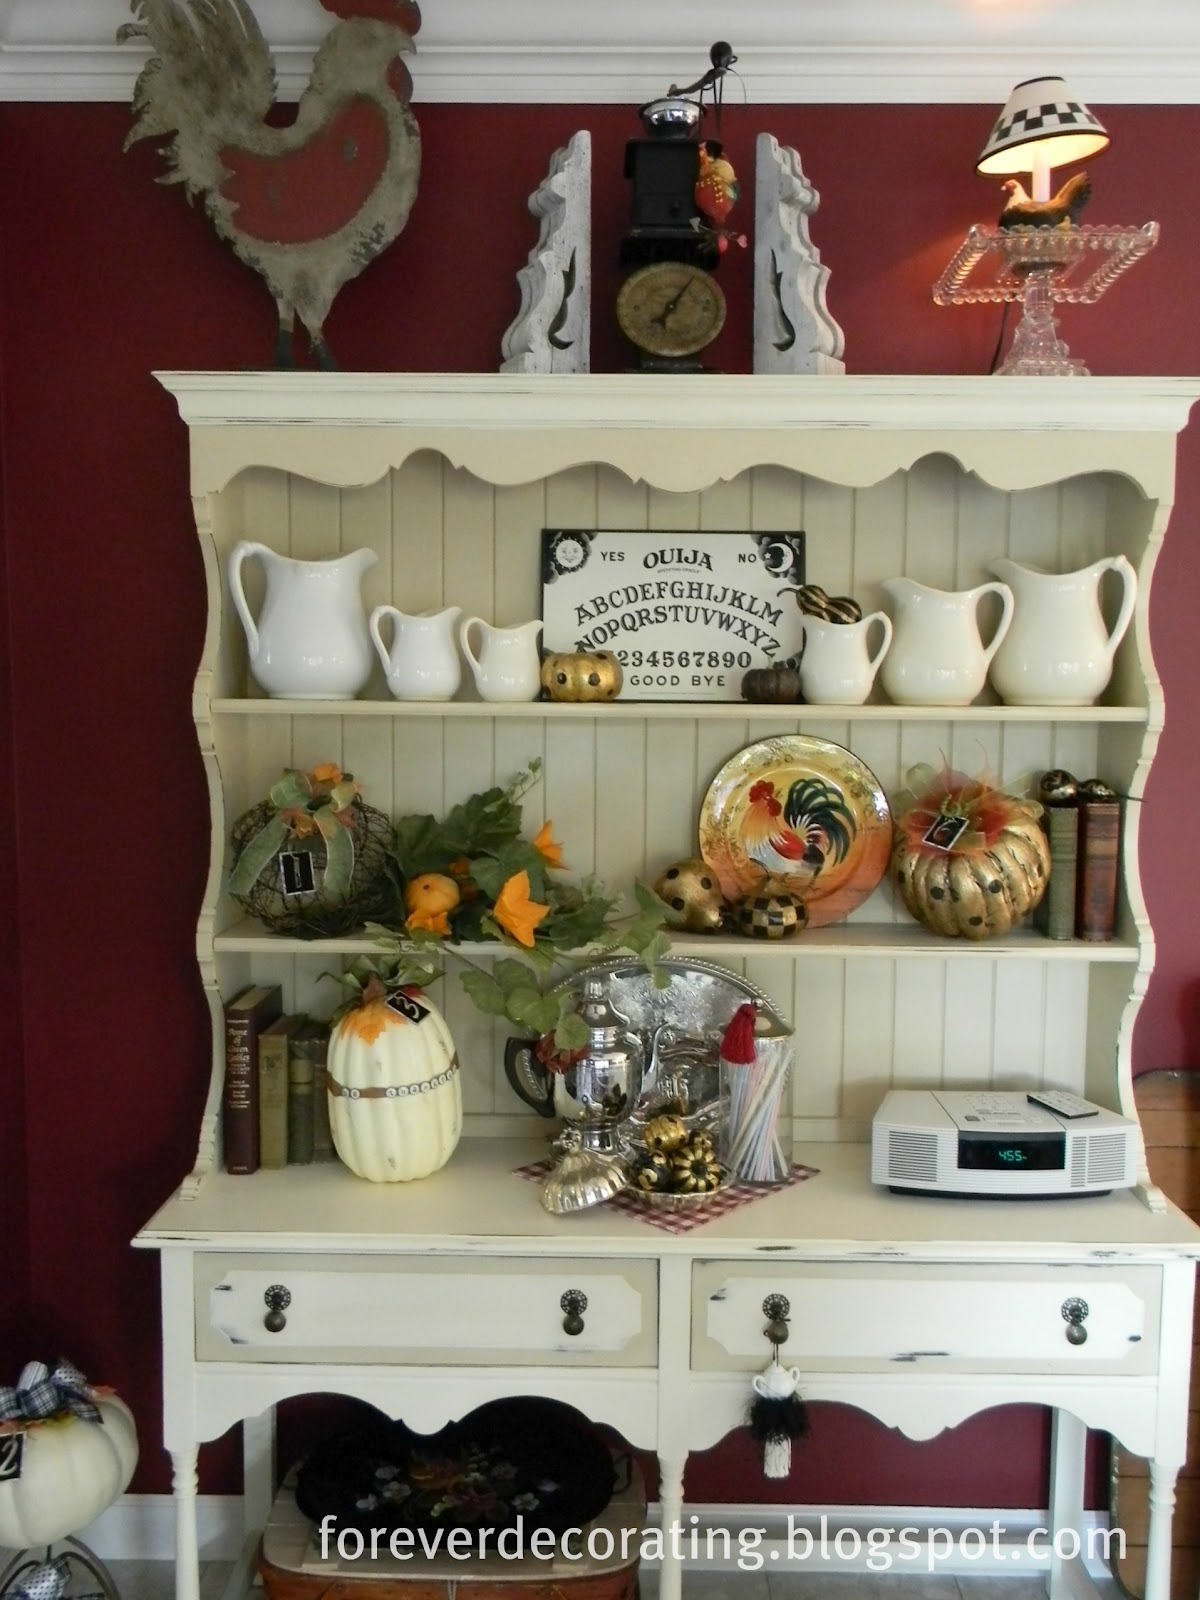 Decorative Items For Living Room: Forever Decorating!: Hutch Decor 101-107